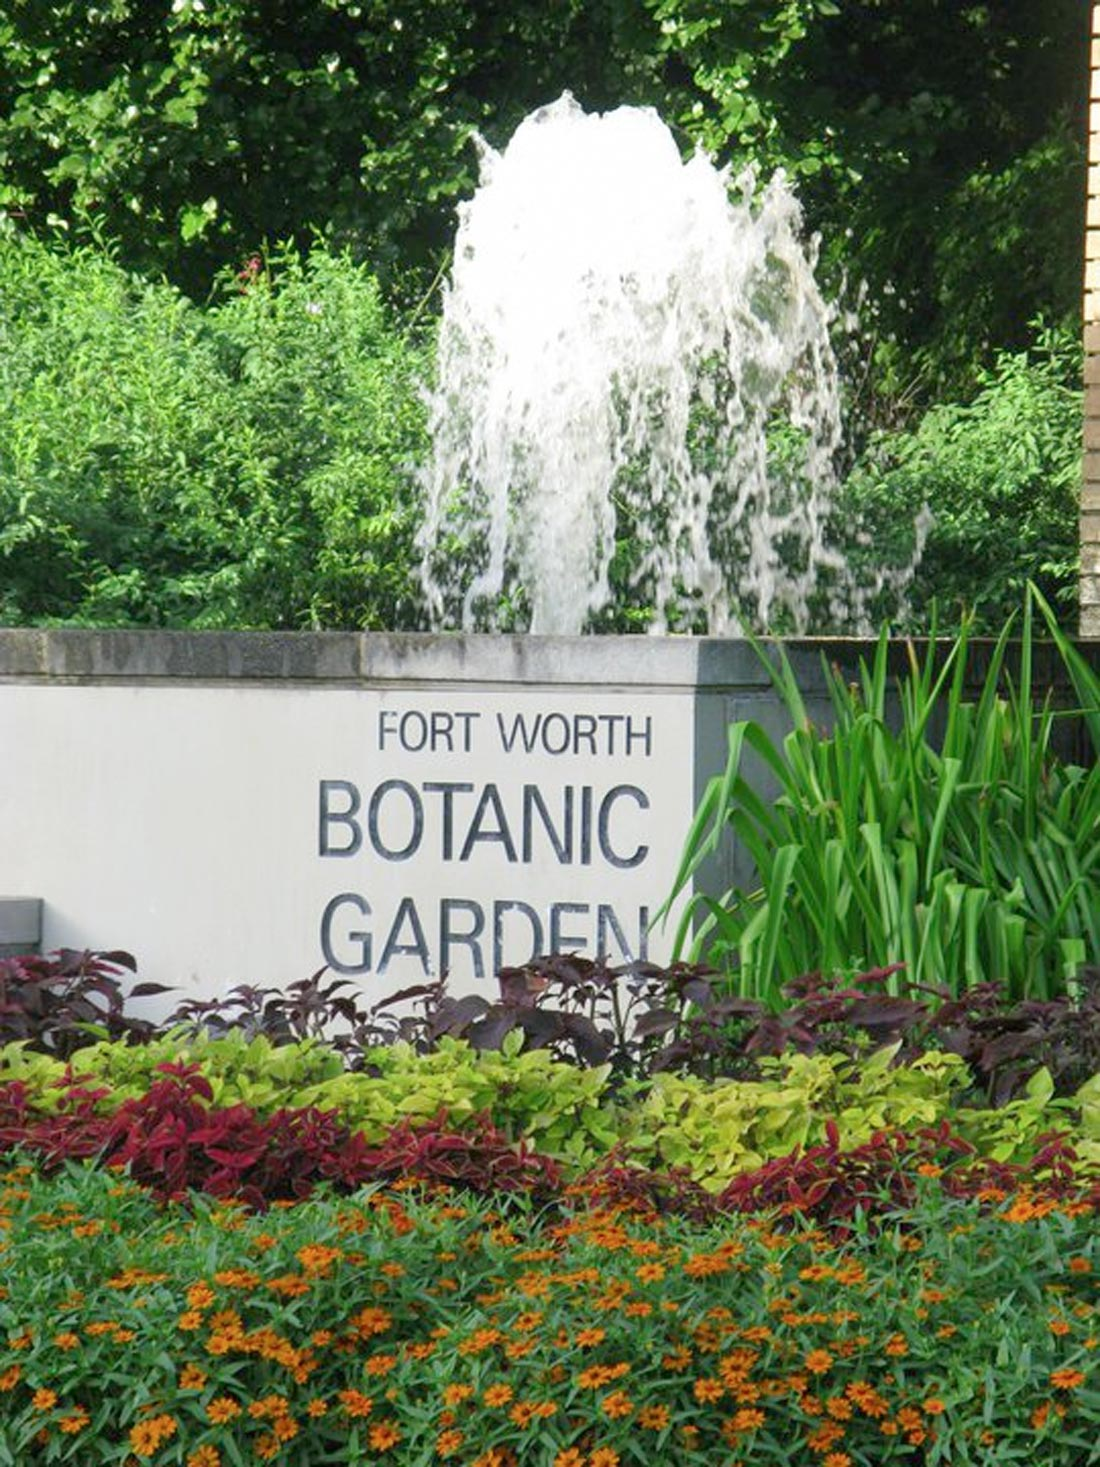 Botanic Garden Growing Fort Worth Weekly